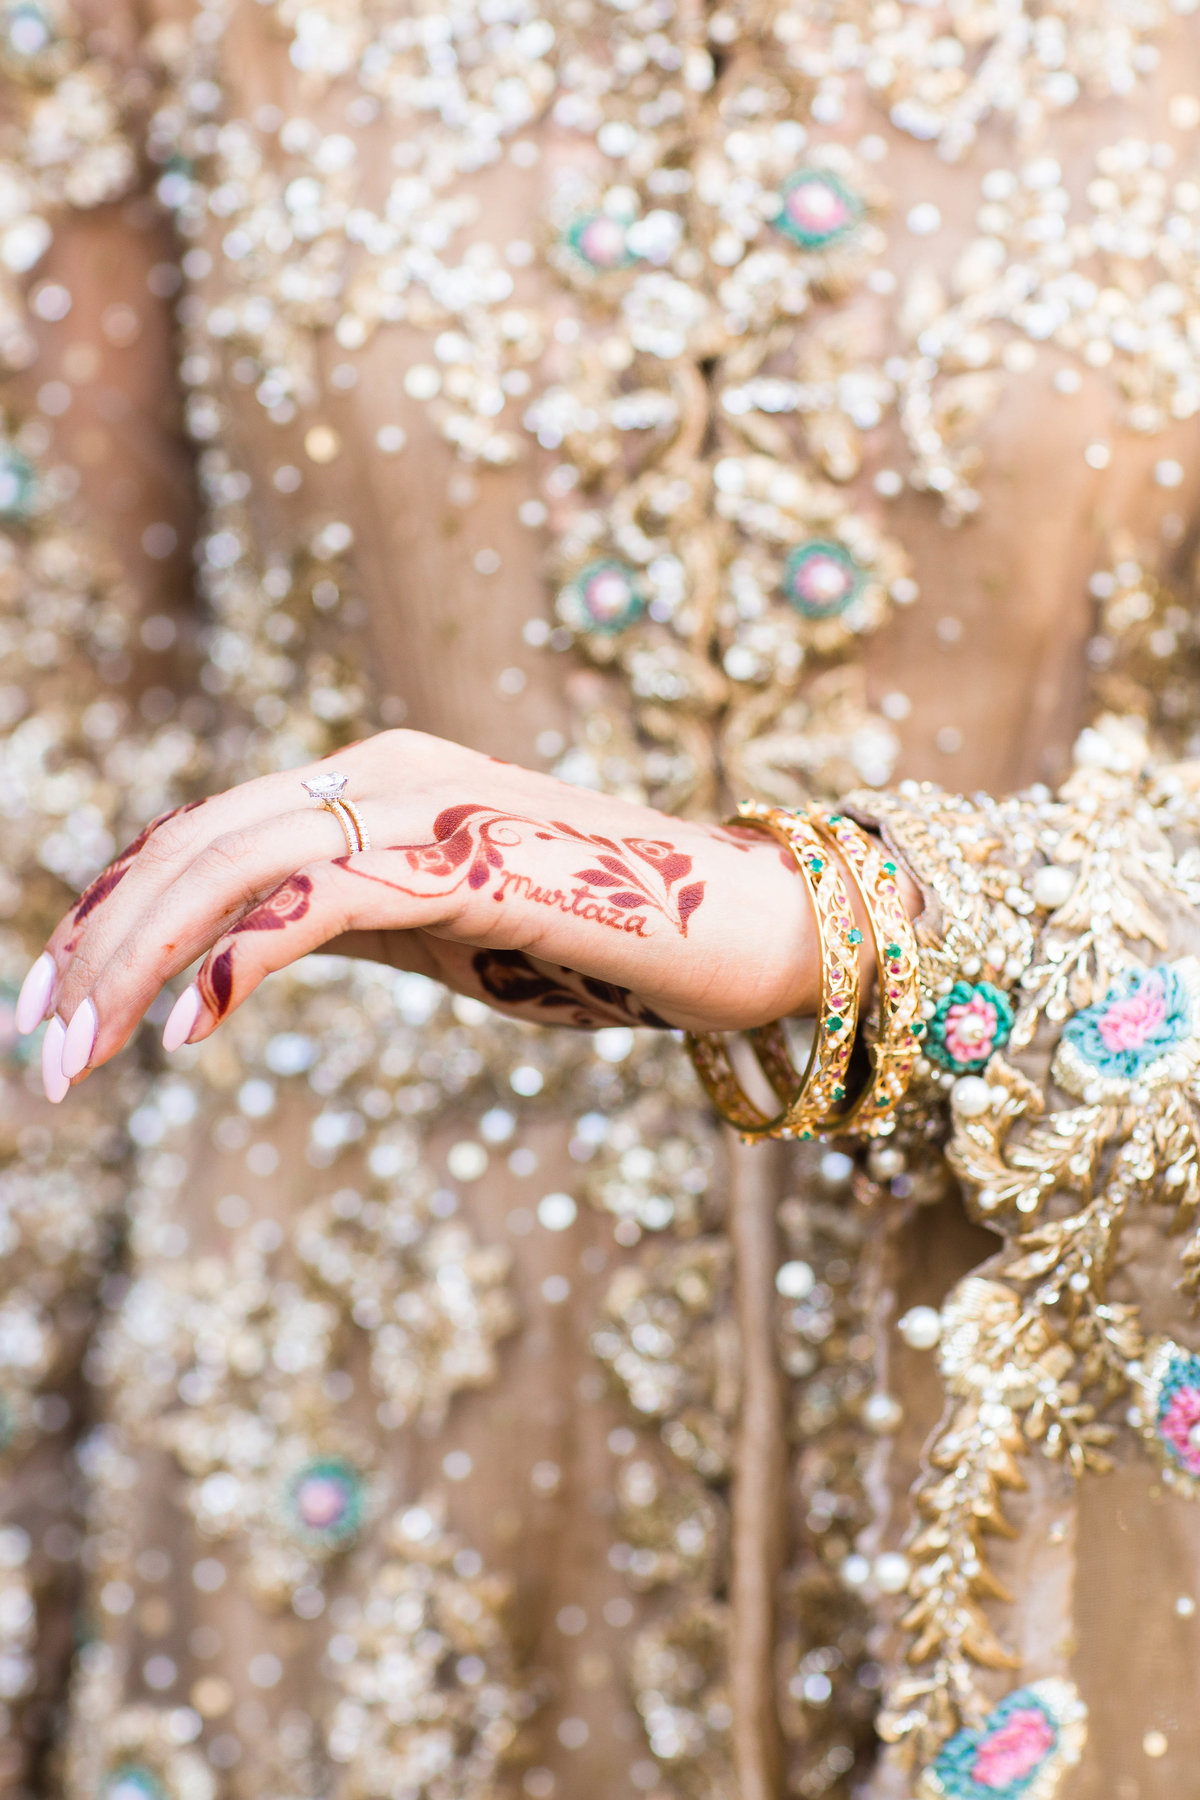 Murtaza-Maha-Wedding-Teasers-066